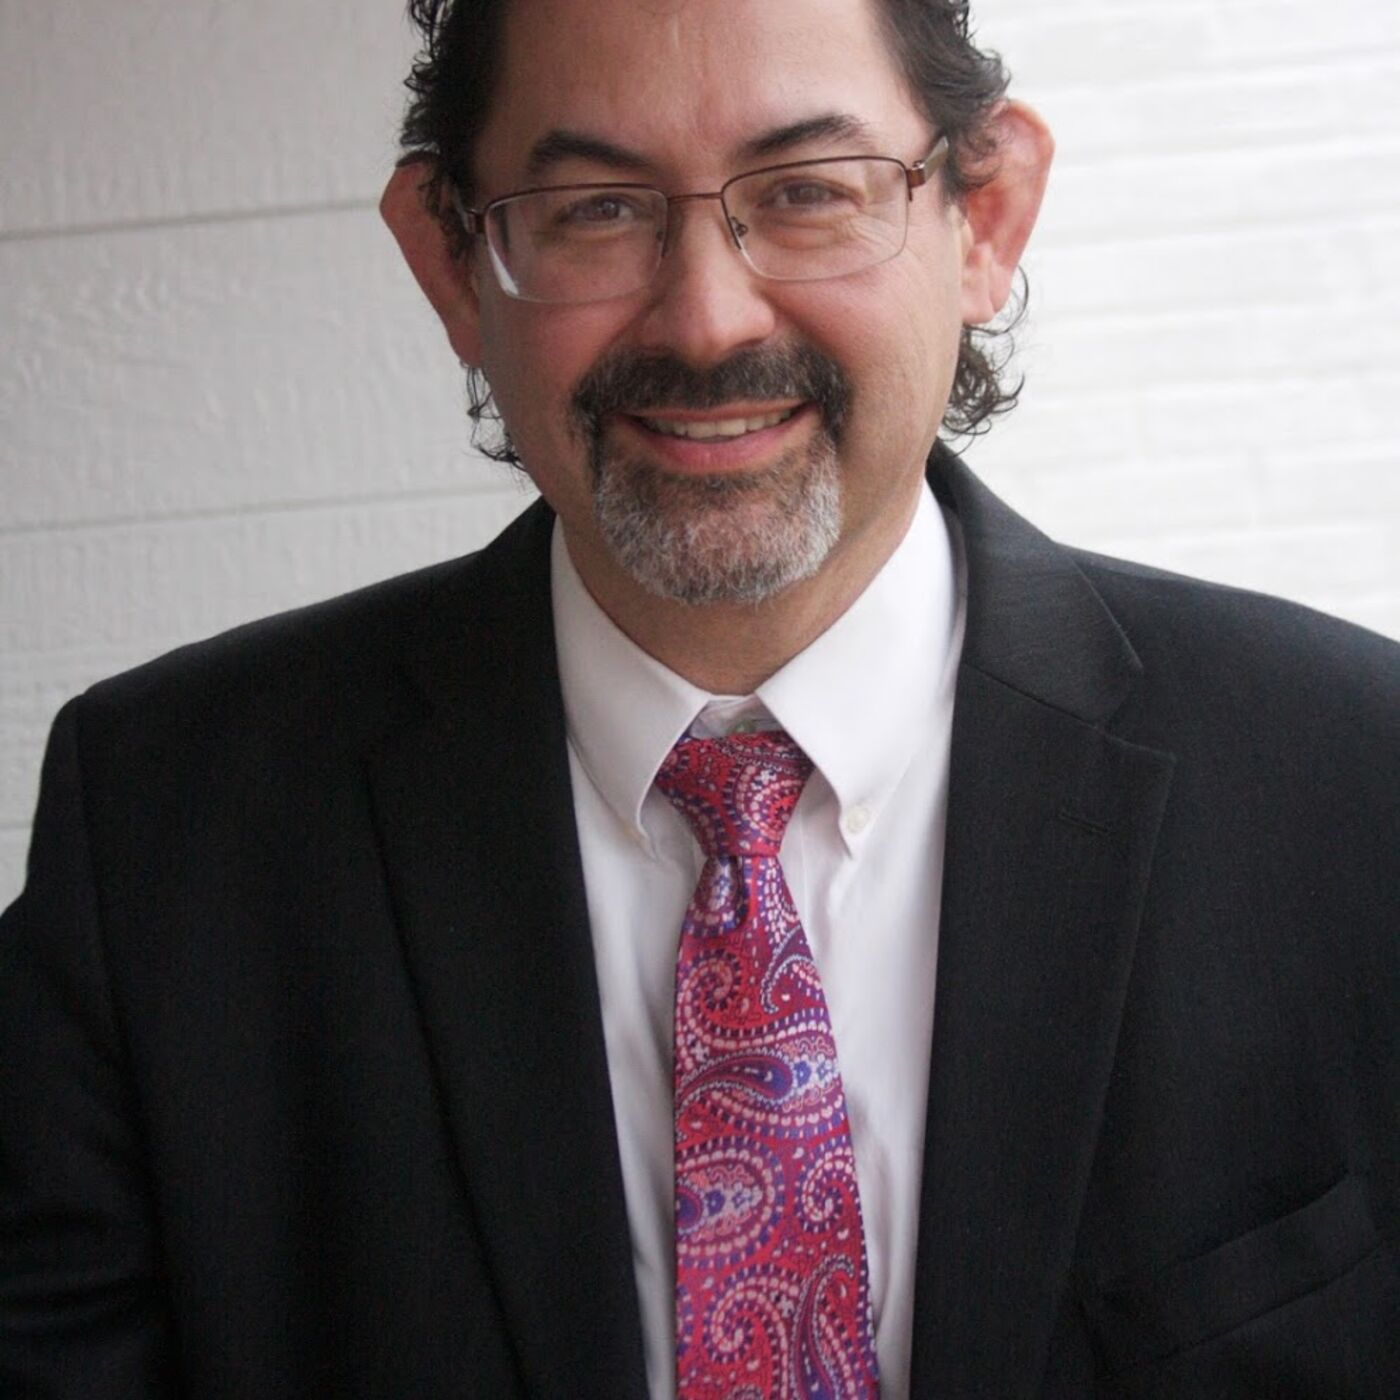 A Deep Conversation With Francisco Treviño, Executive Director of Casa de la Cultura--Video Available On Inspiring Conversations Podcast Channel On Youtube-Link Below